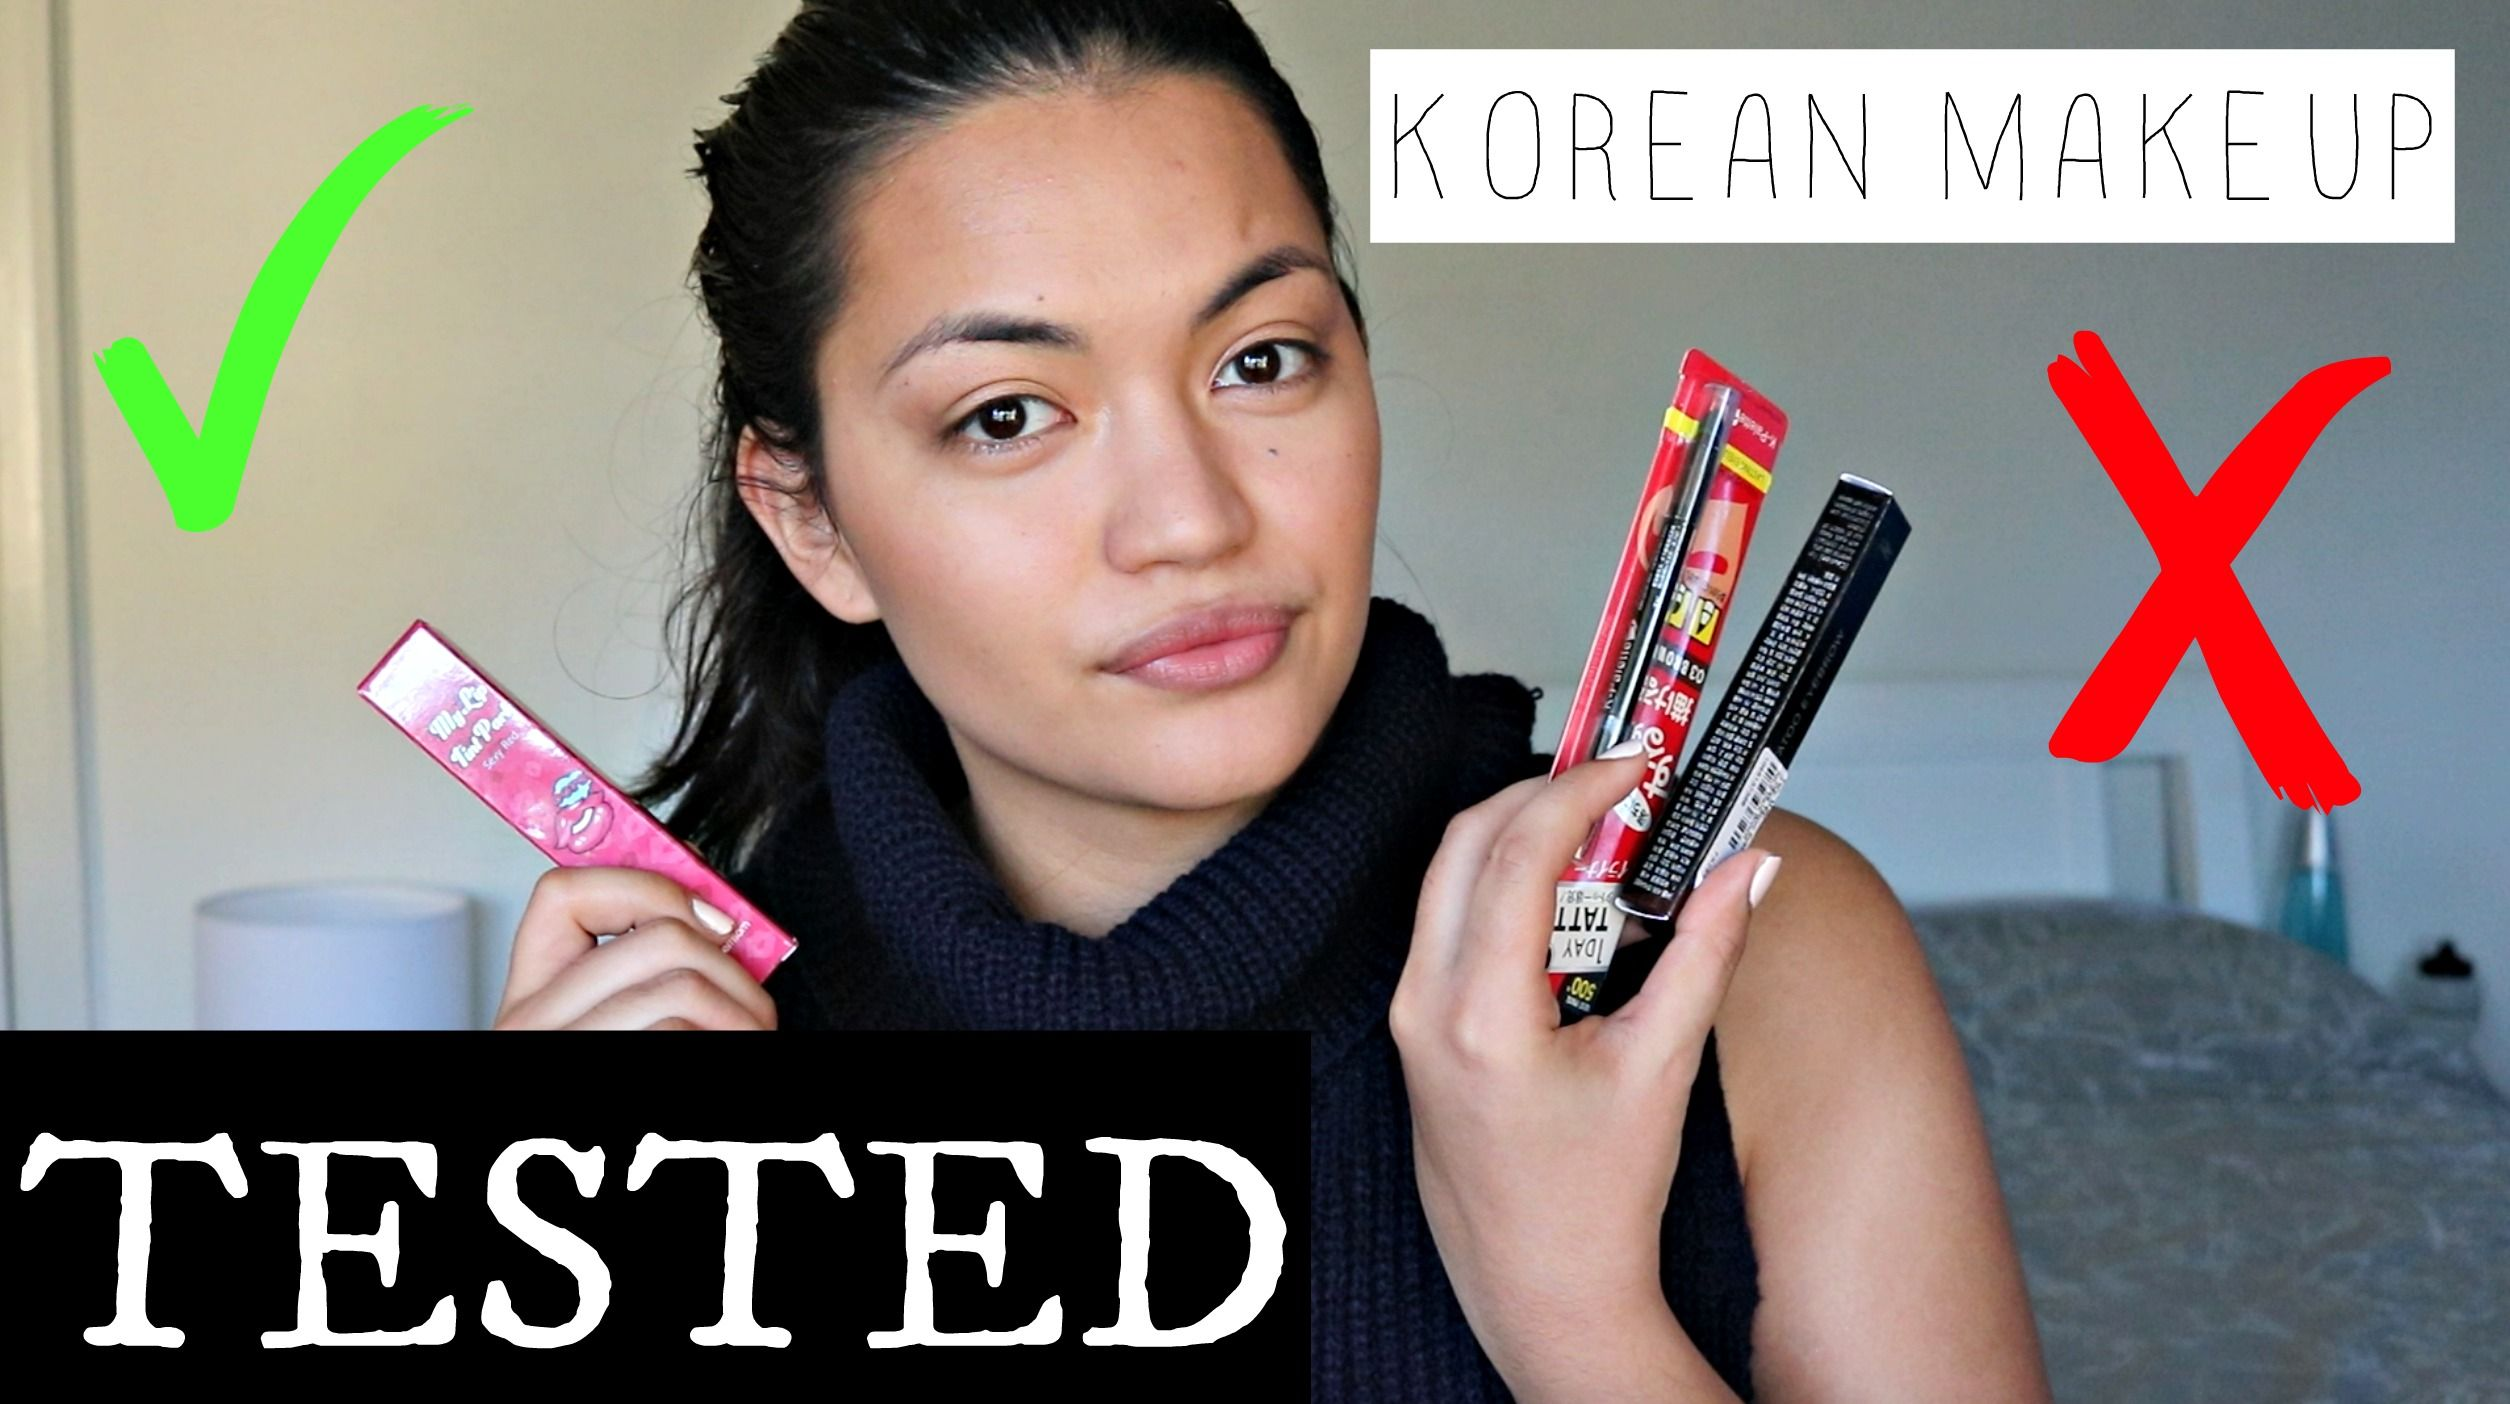 KOREAN MAKEUP TESTED tattoo makeup, korean tattoo makeup